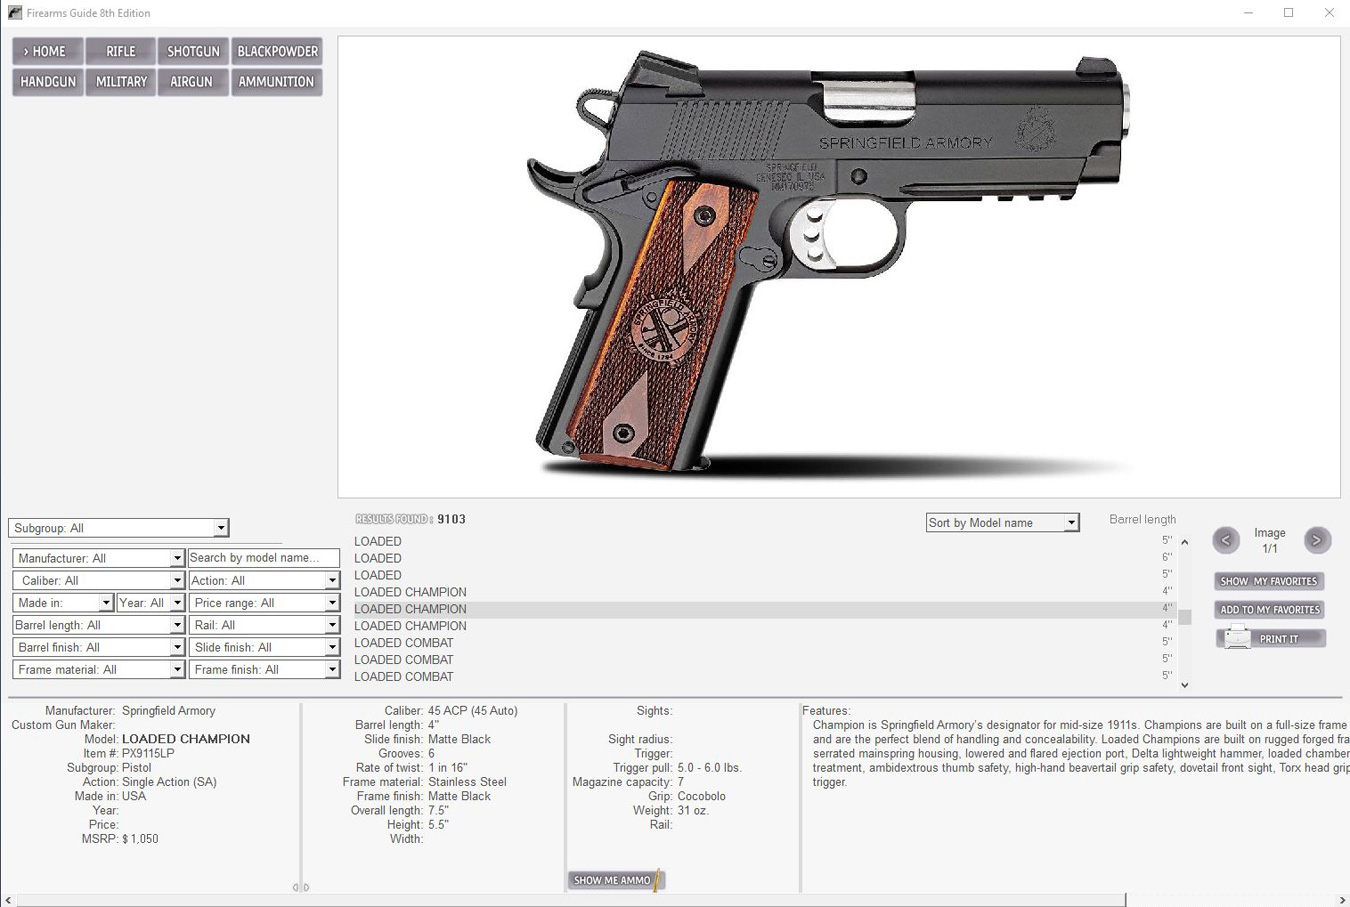 The Firearms Guide — The Smart Source - The K-Var Armory on